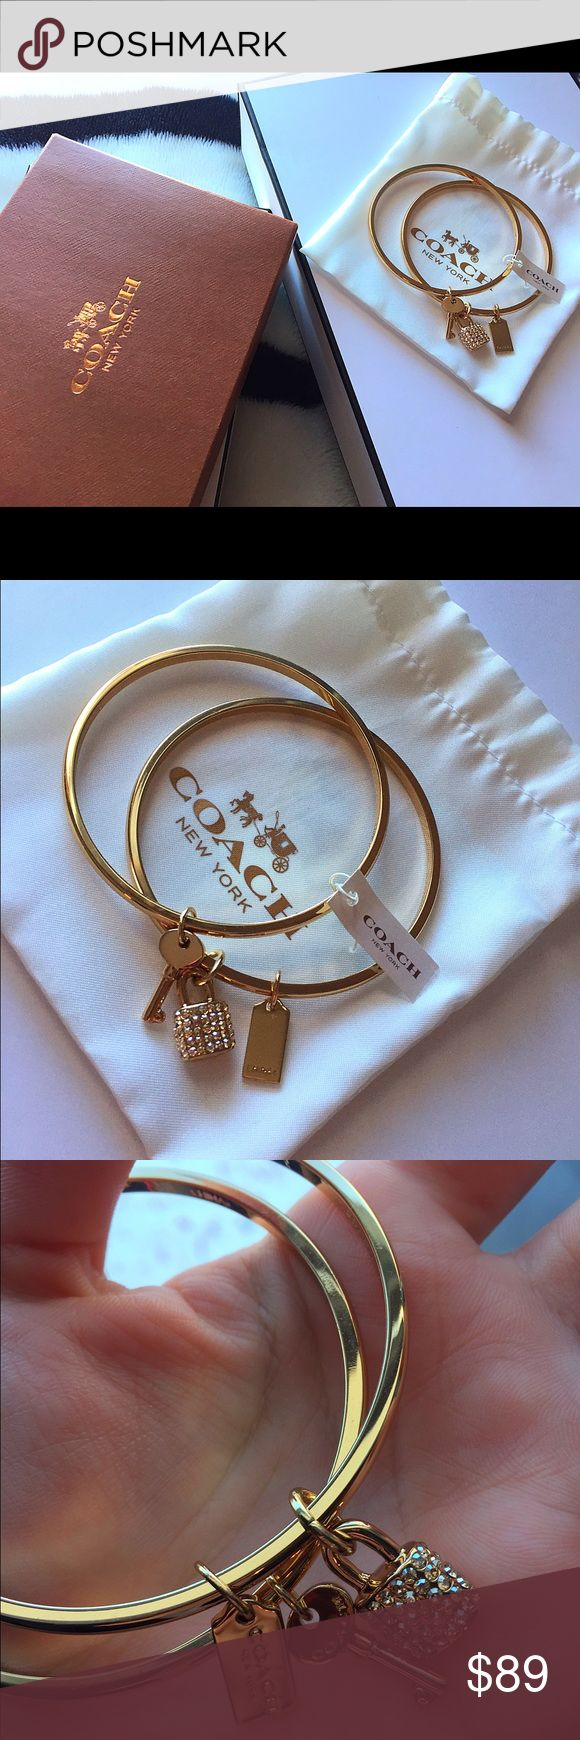 New coach bangle bracelet with key and charms This beautiful coach bracelet is brand new with tags. It is in perfect condition. It comes with its pouch and the original coach box & the care booklet. It is super cute and goes with everything ❤️ It can also be a gorgeous gift for someone special. The charms add a really nice touch. Coach Jewelry Bracelets